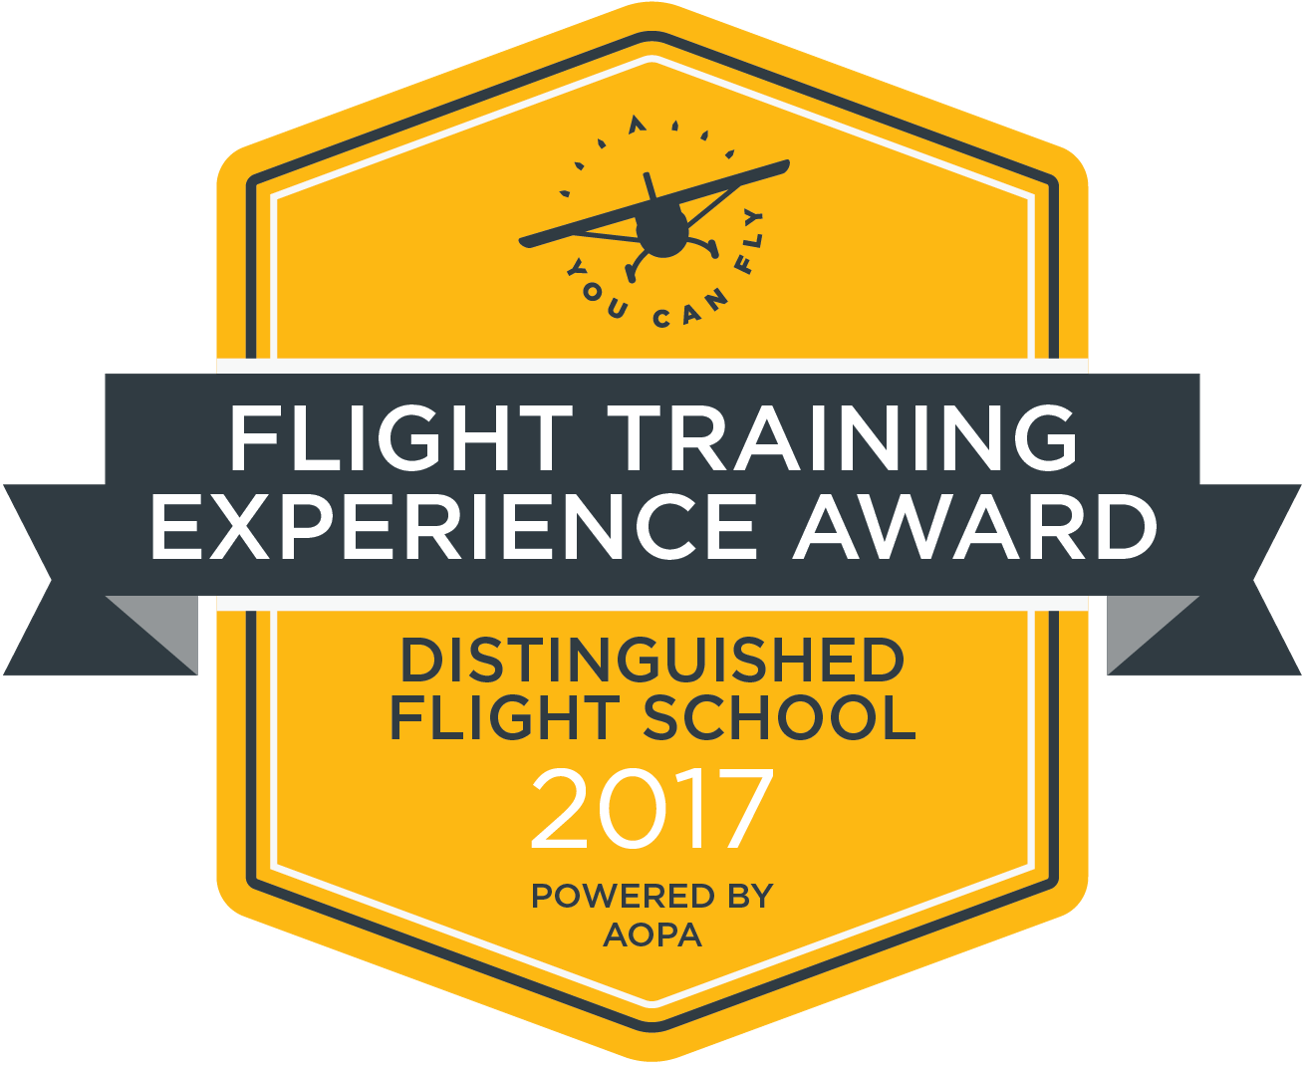 2017 AOPA Distinguished Flight School Flight Training Experience Award